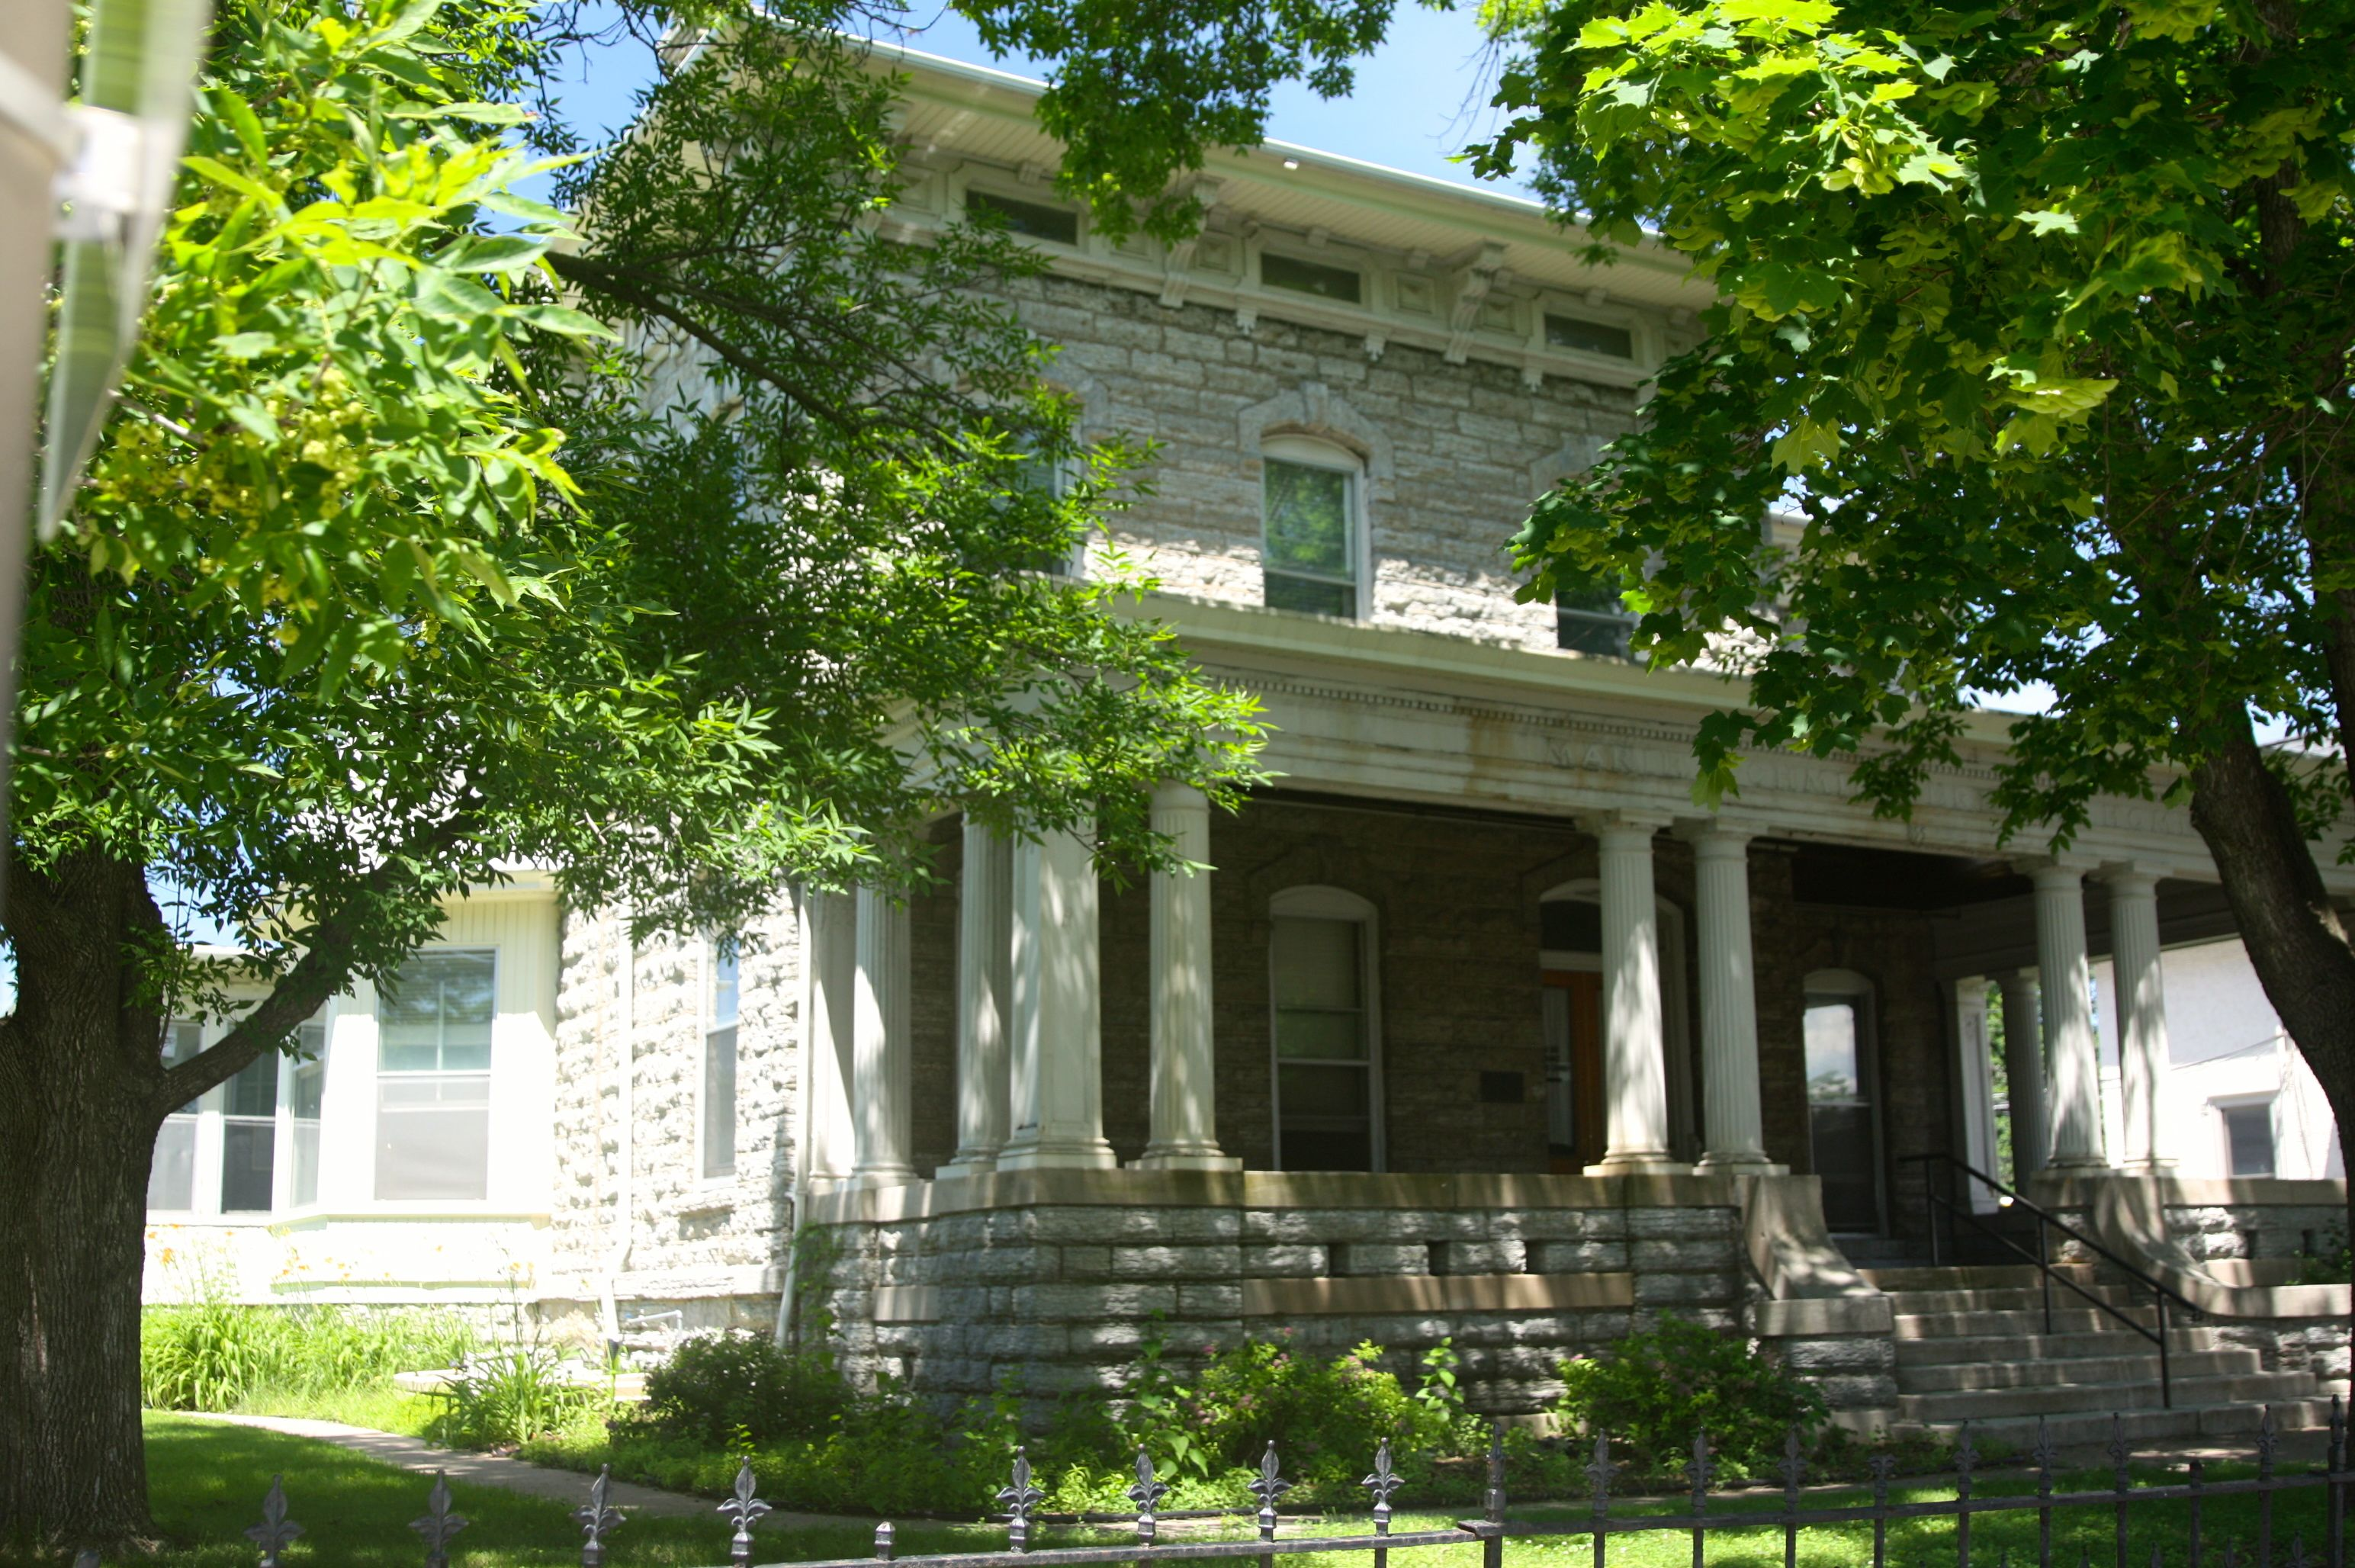 Built for the Stahlmann family, this became home to the Schmidt family in the early 1900s.